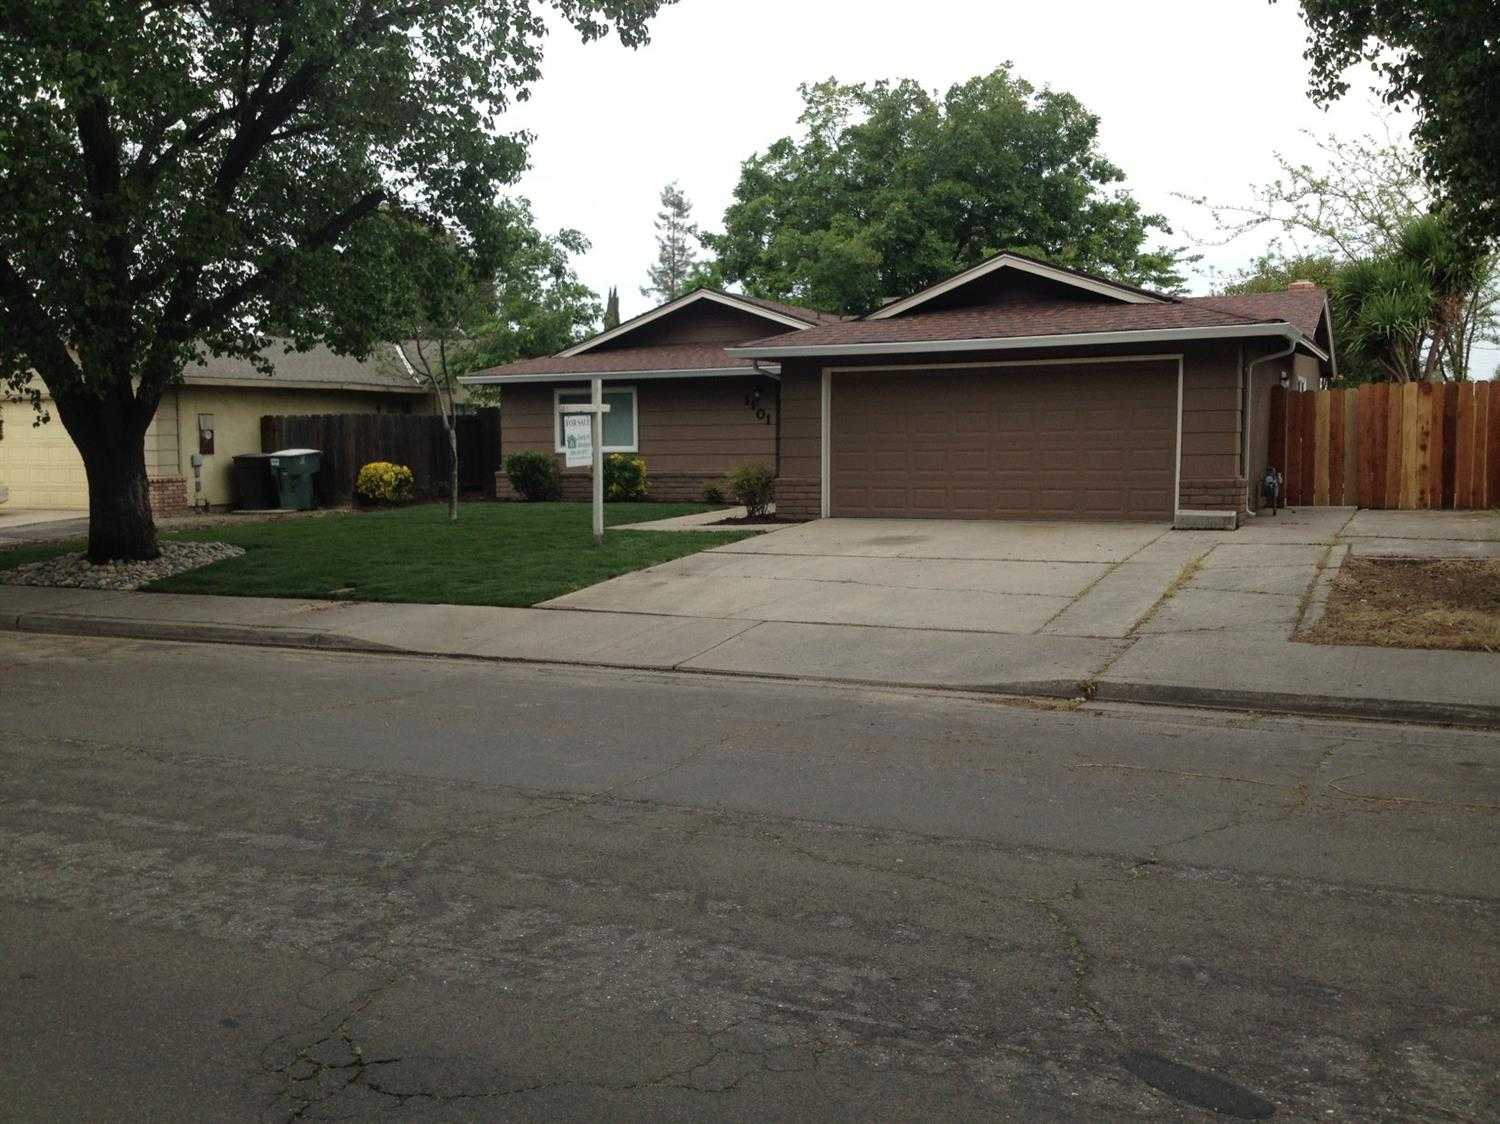 $295,000 - 3Br/2Ba -  for Sale in Modesto